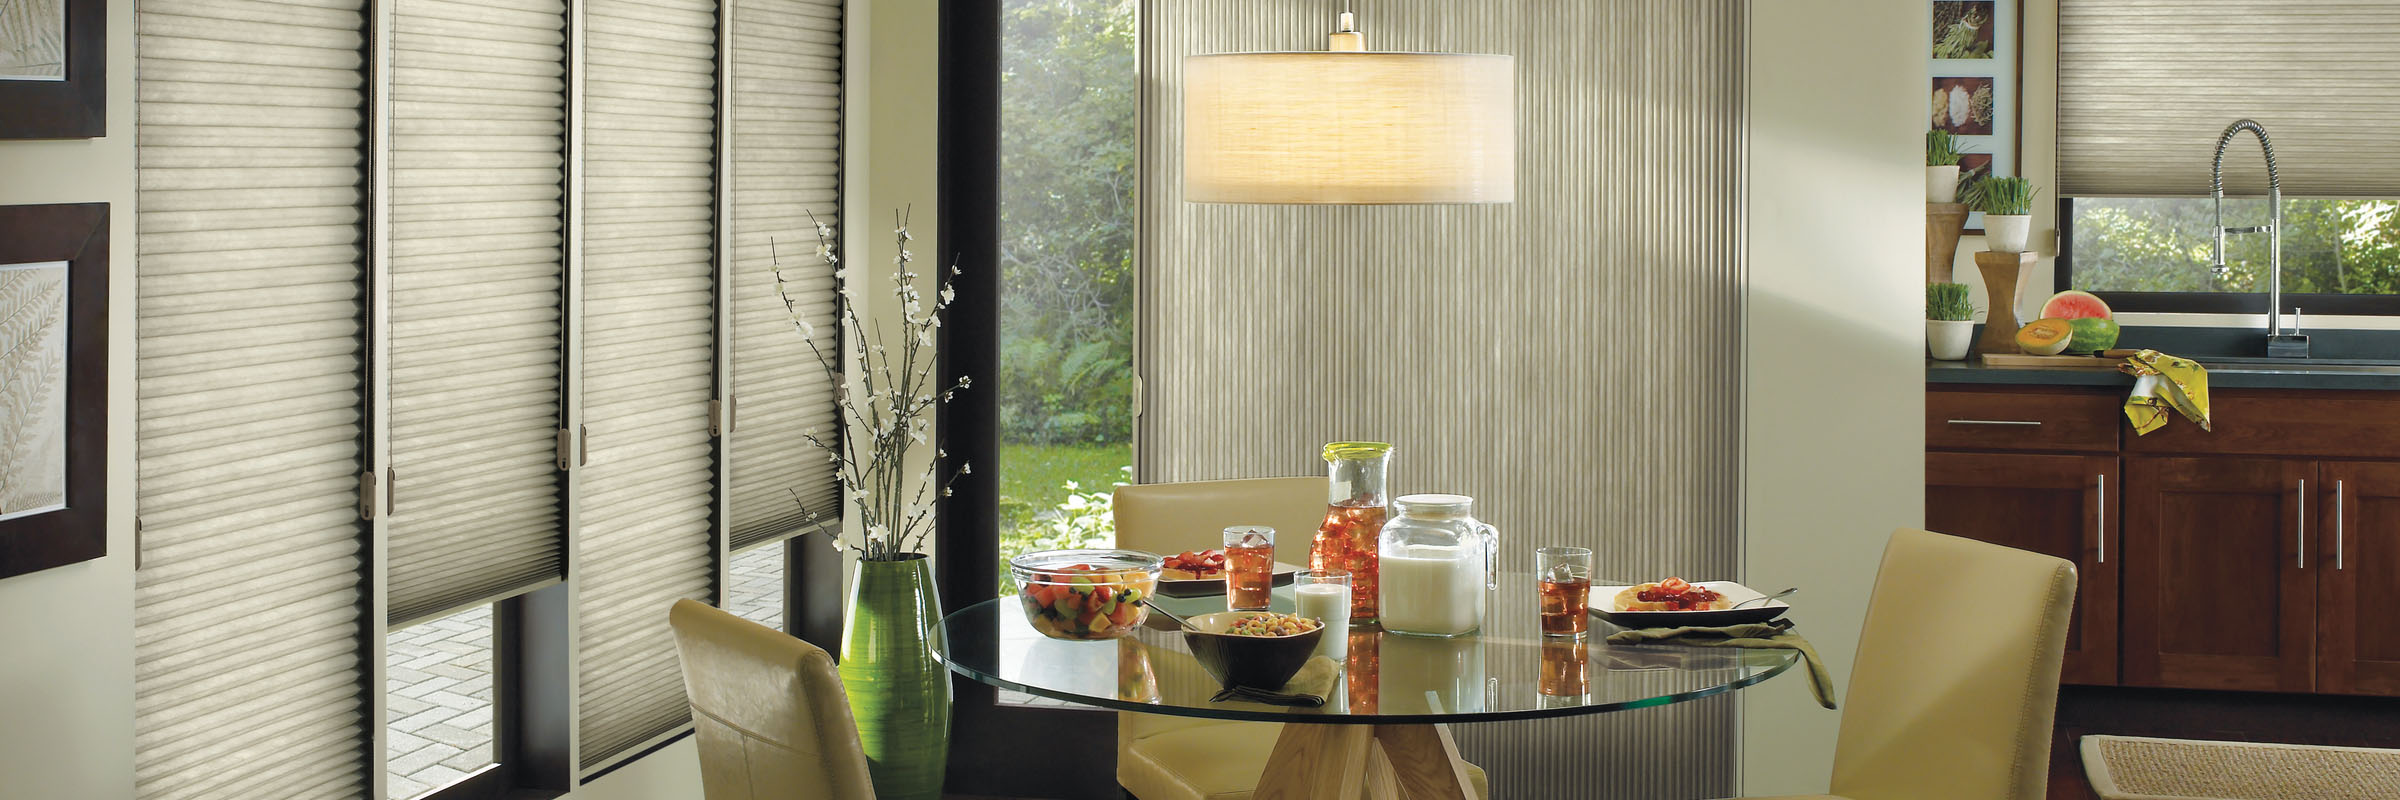 Cellular blinds in Sunterra™ Driftwood - Applause